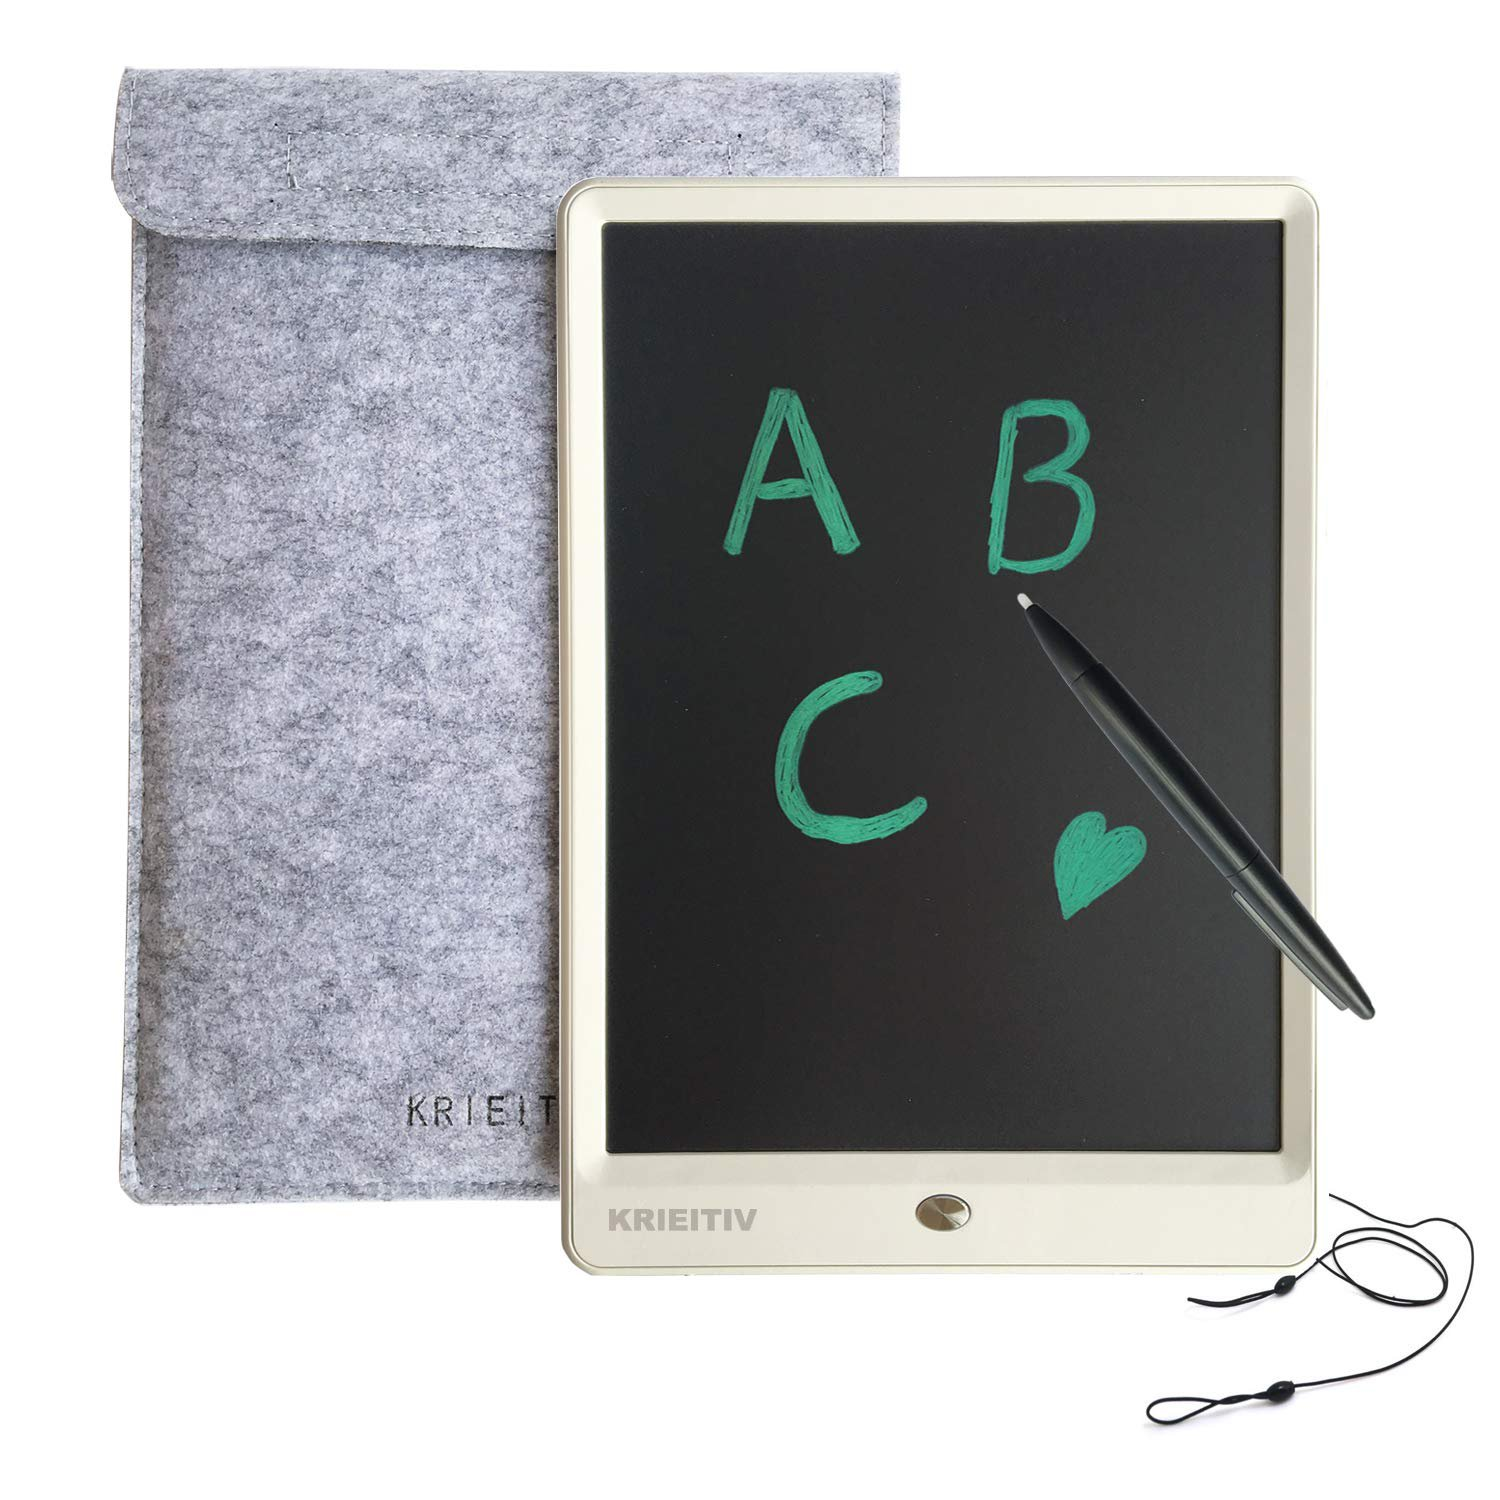 10 Inch LCD Writing Tablet,KRIEITIV 10 Inch LCD Drawing Board Message Board